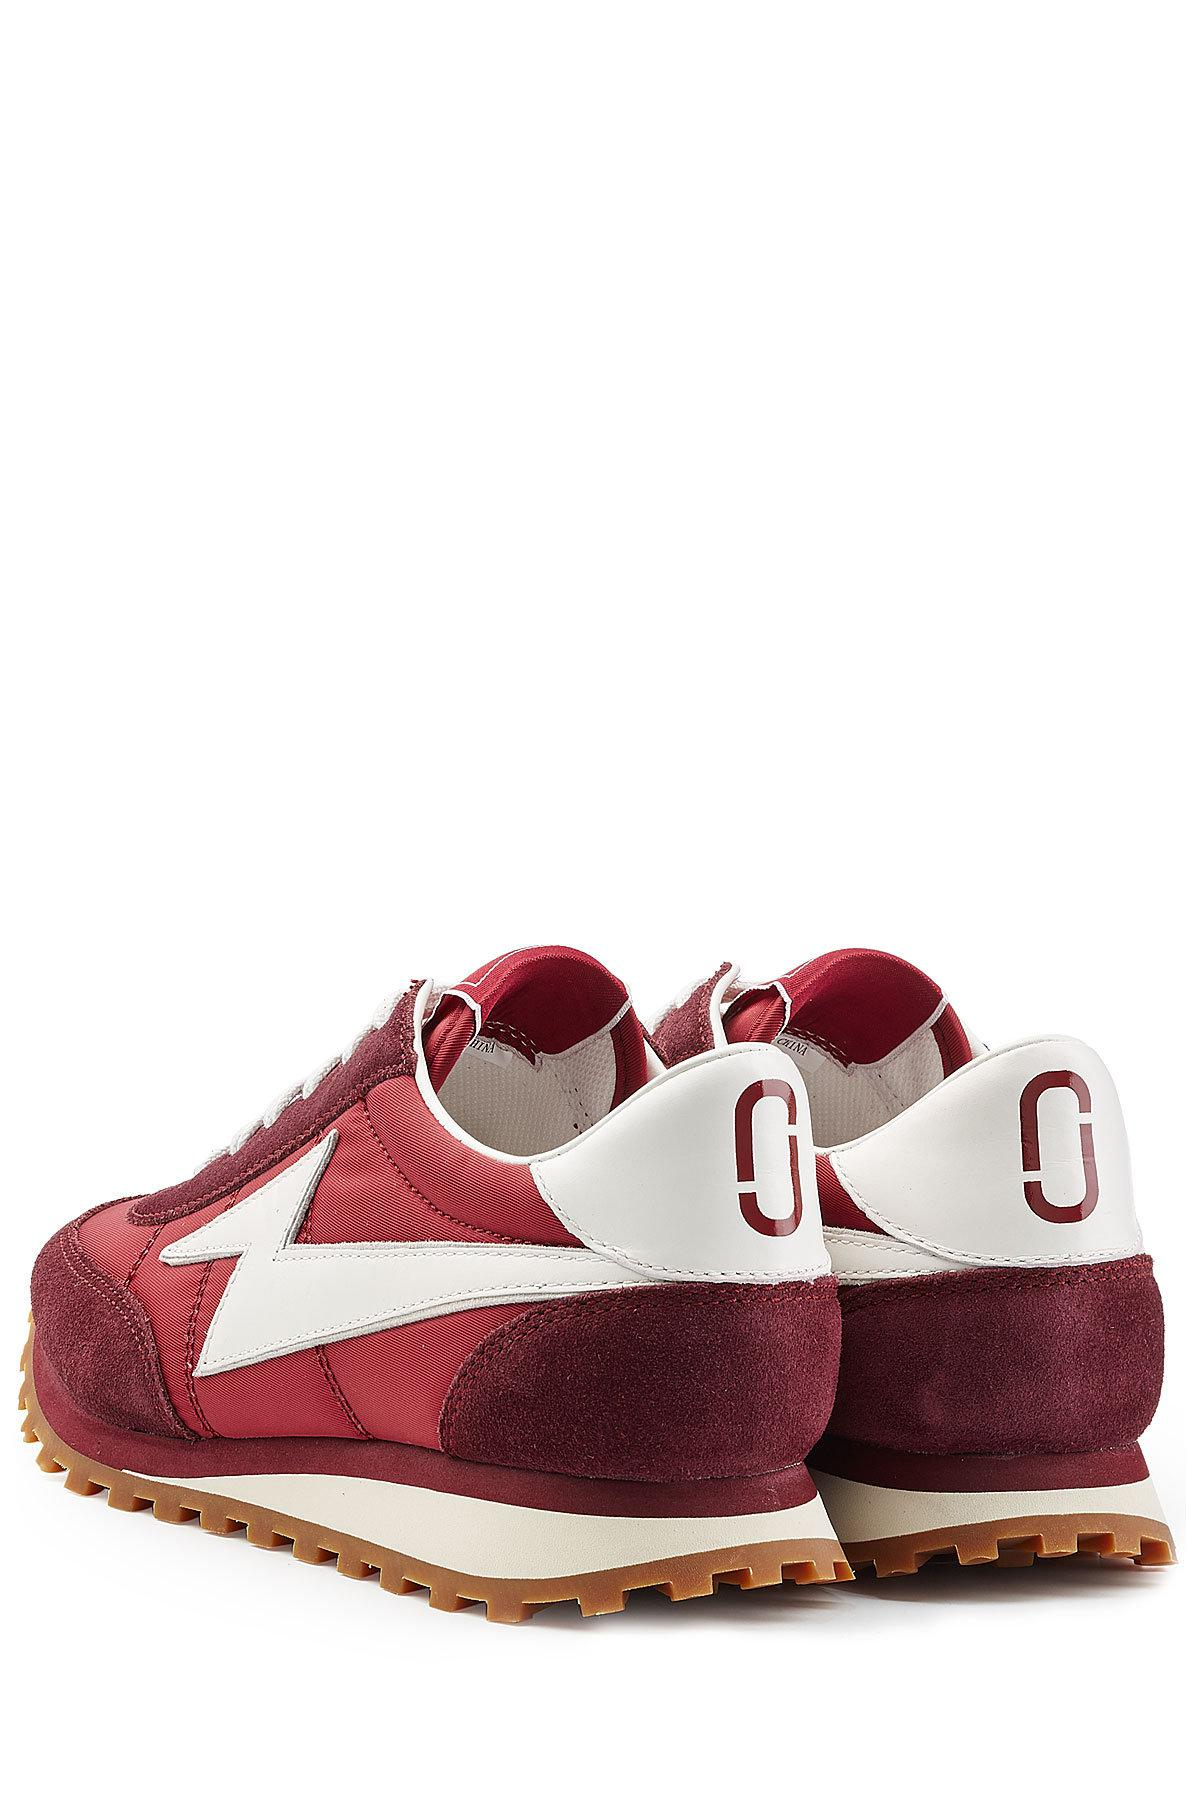 Marc Jacobs Suede and Fabric Sneakers Buy Cheap Free Shipping Buy Cheap For Nice t9qEFCr